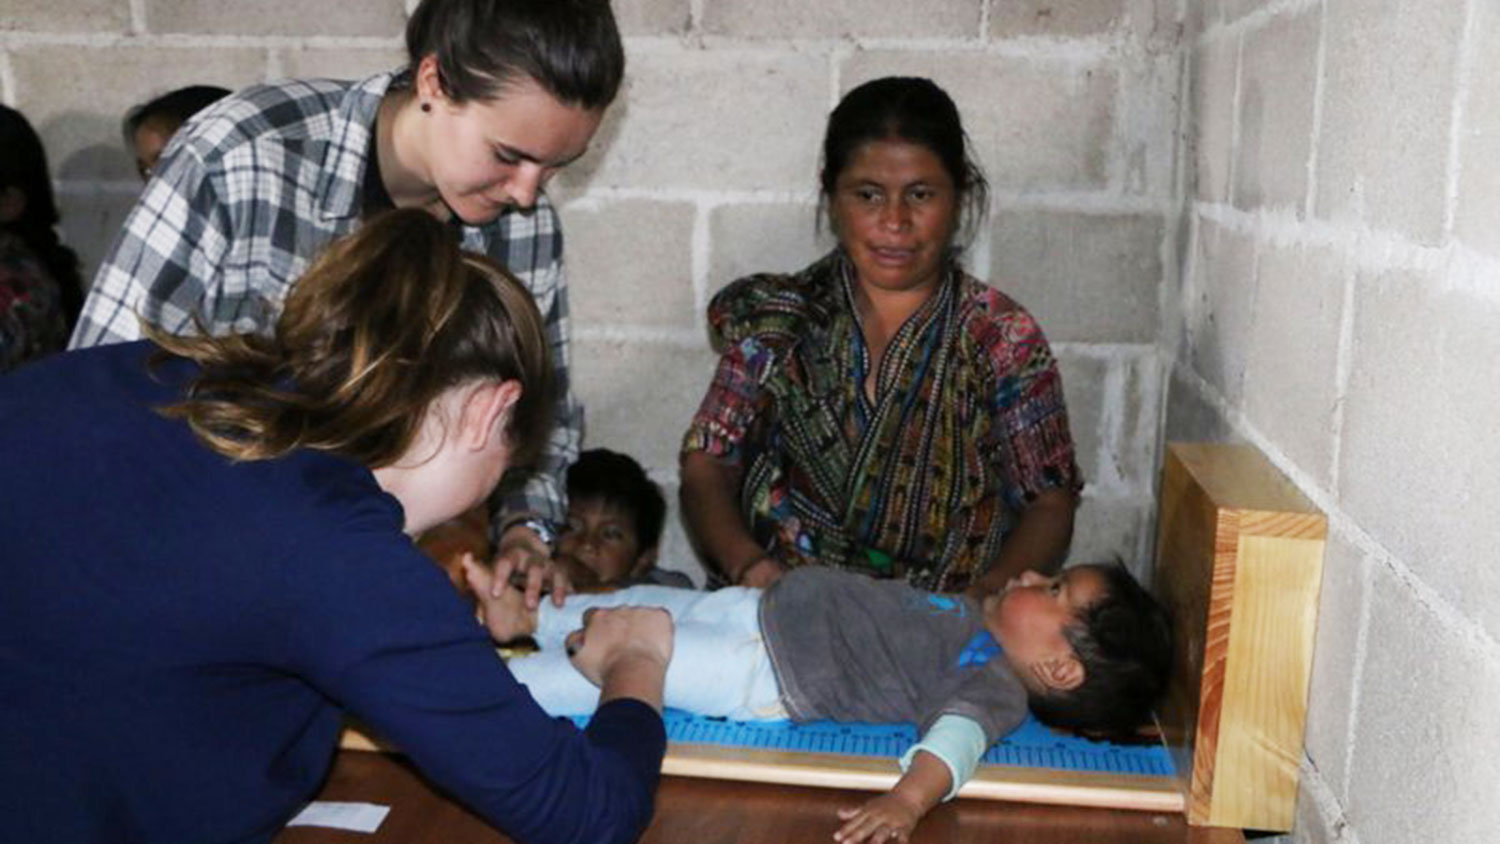 CALS student Kati Scruggs assisting with a child's medical exam in Guatemala